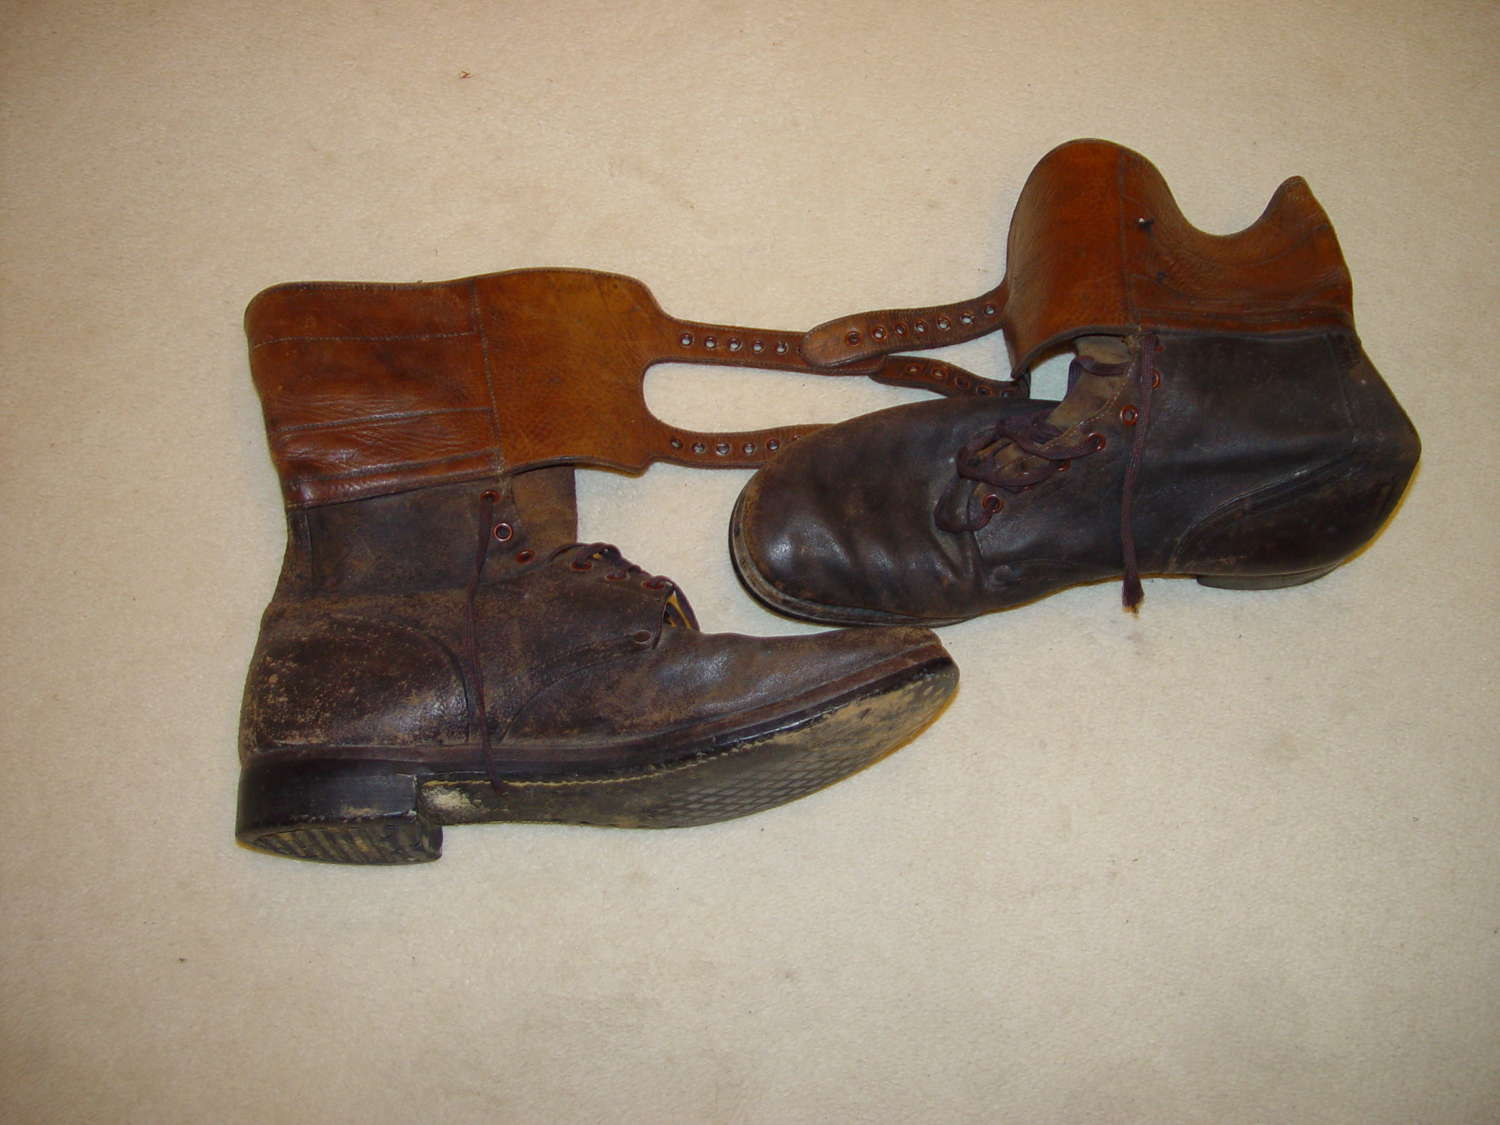 US army late war buckle boots